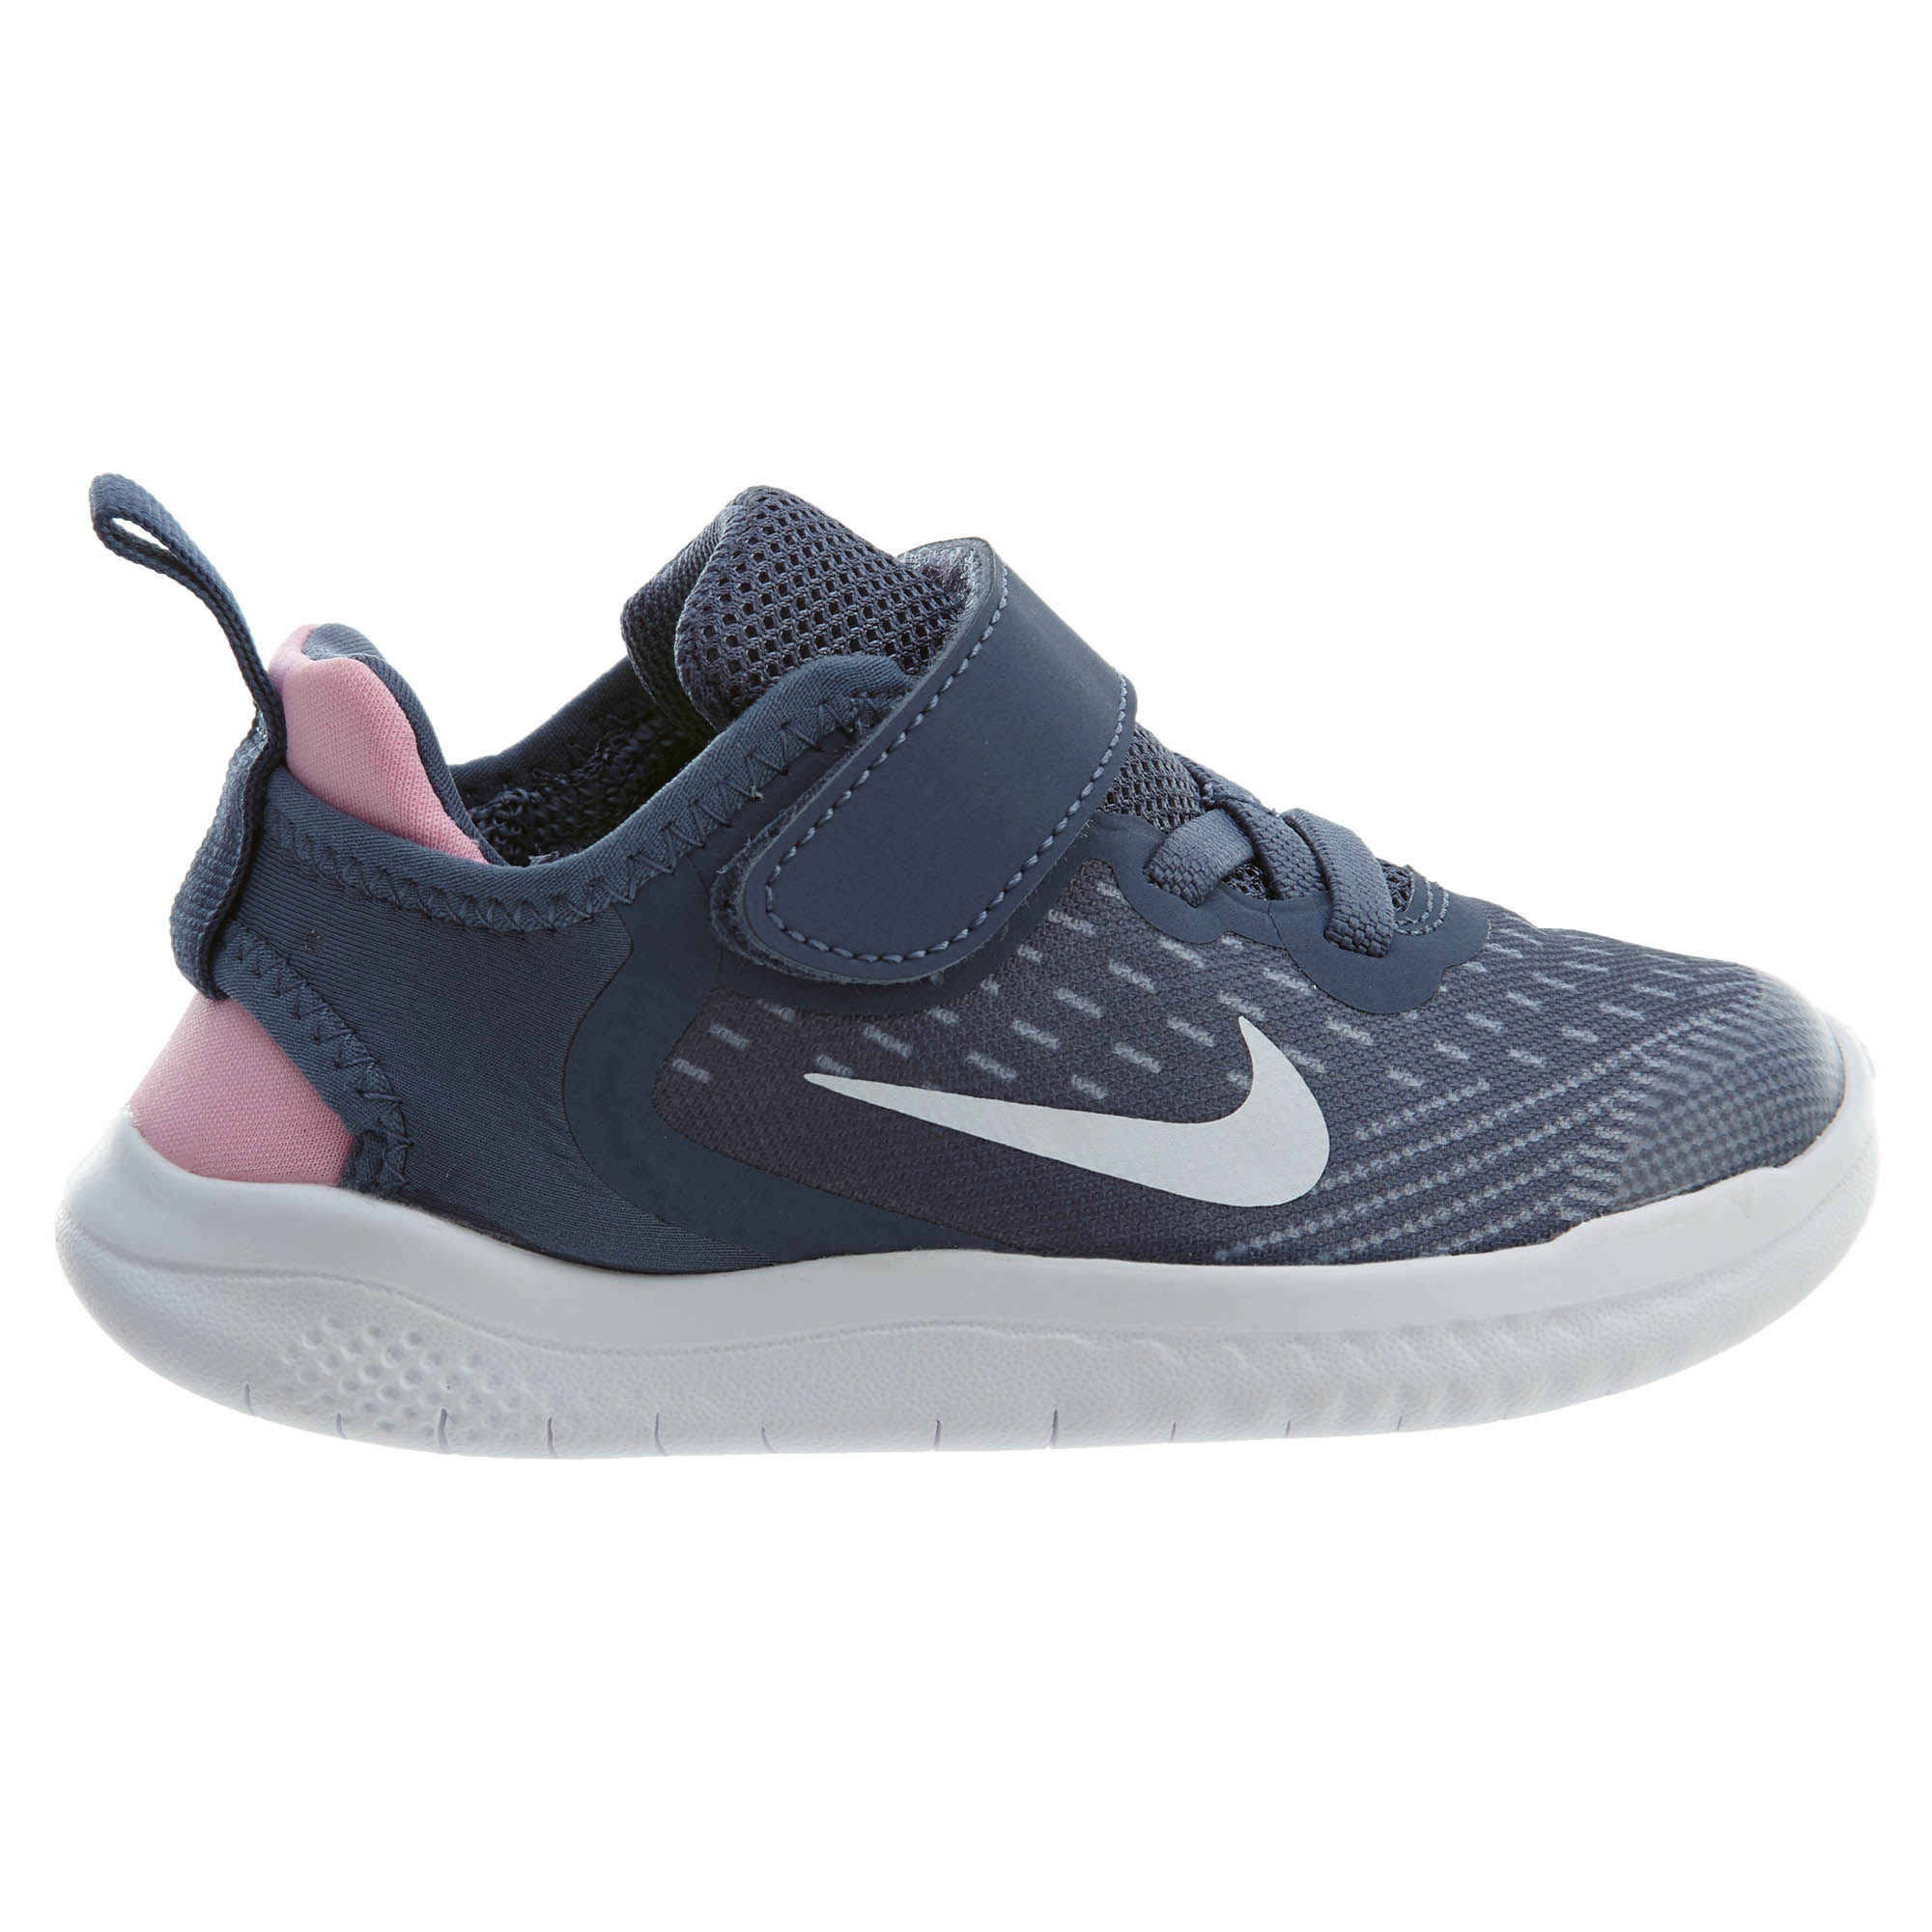 9b65e485ad885 Nike Toddlers Free RN 2018 Running Shoes AH3456-402